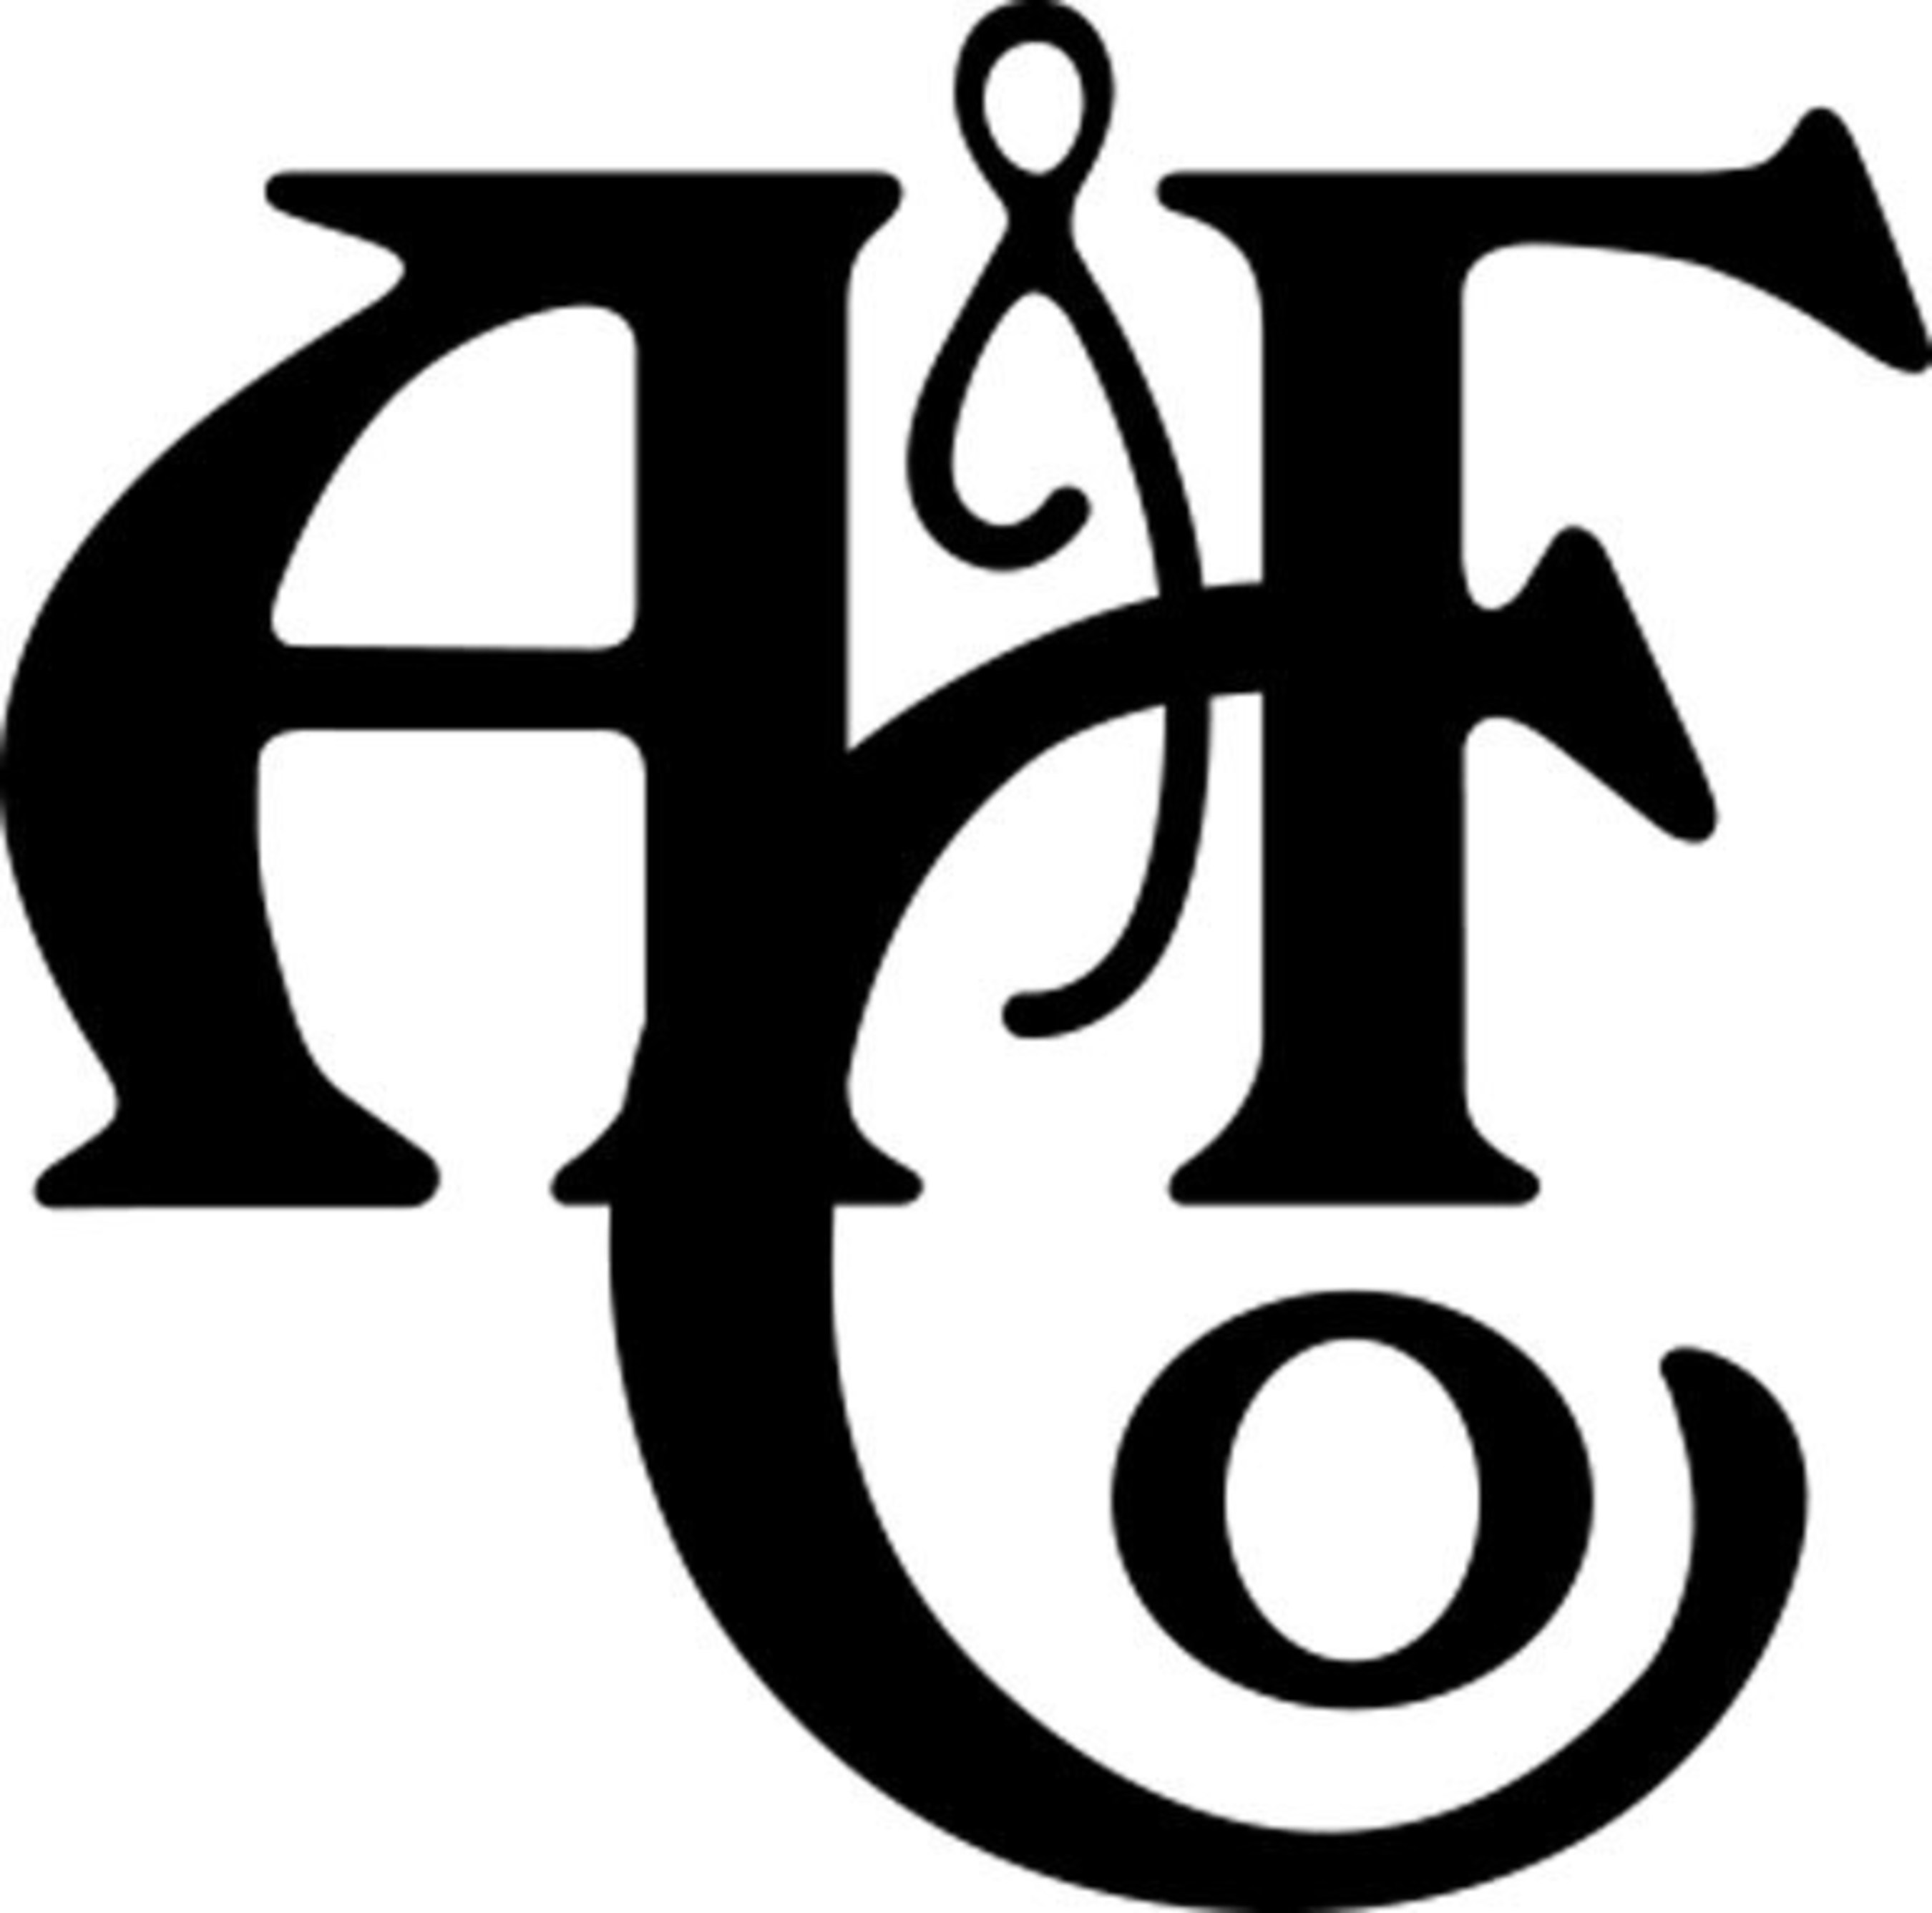 Abercrombie and fitch clipart banner royalty free library This is Abercrombie & Fitch banner royalty free library